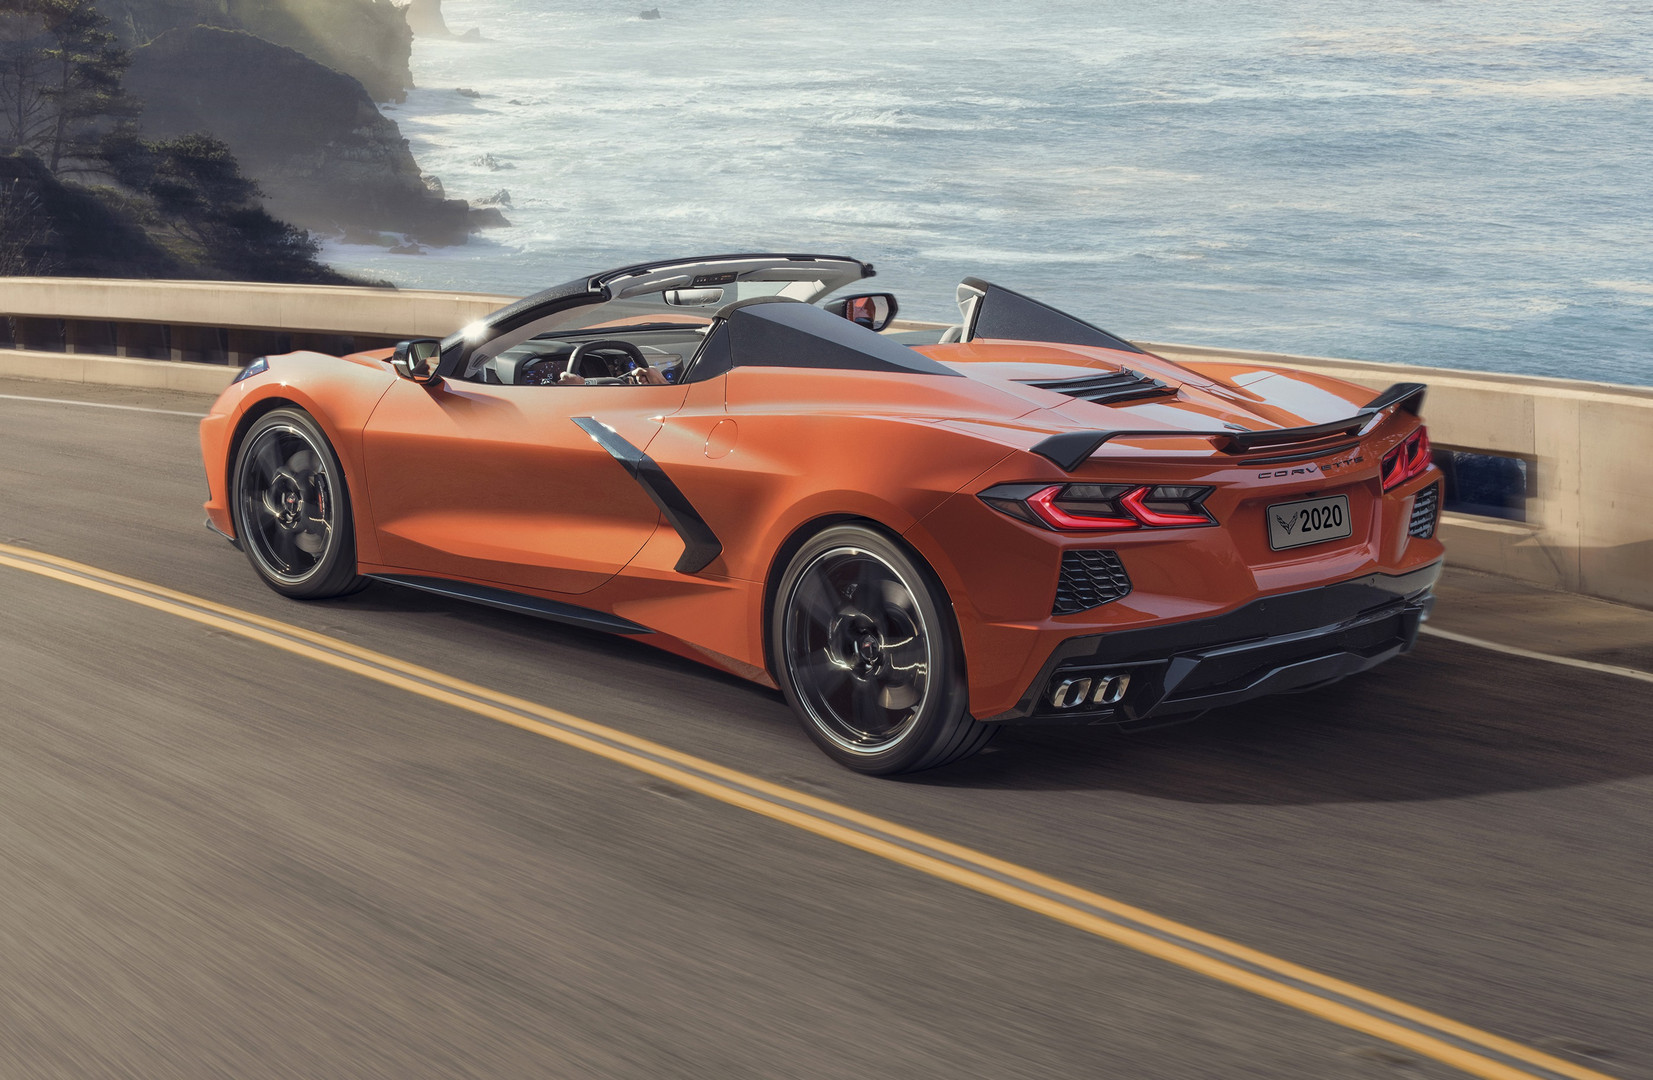 2020 Chevrolet Corvette Convertible: First Time Ever as a Hardtop